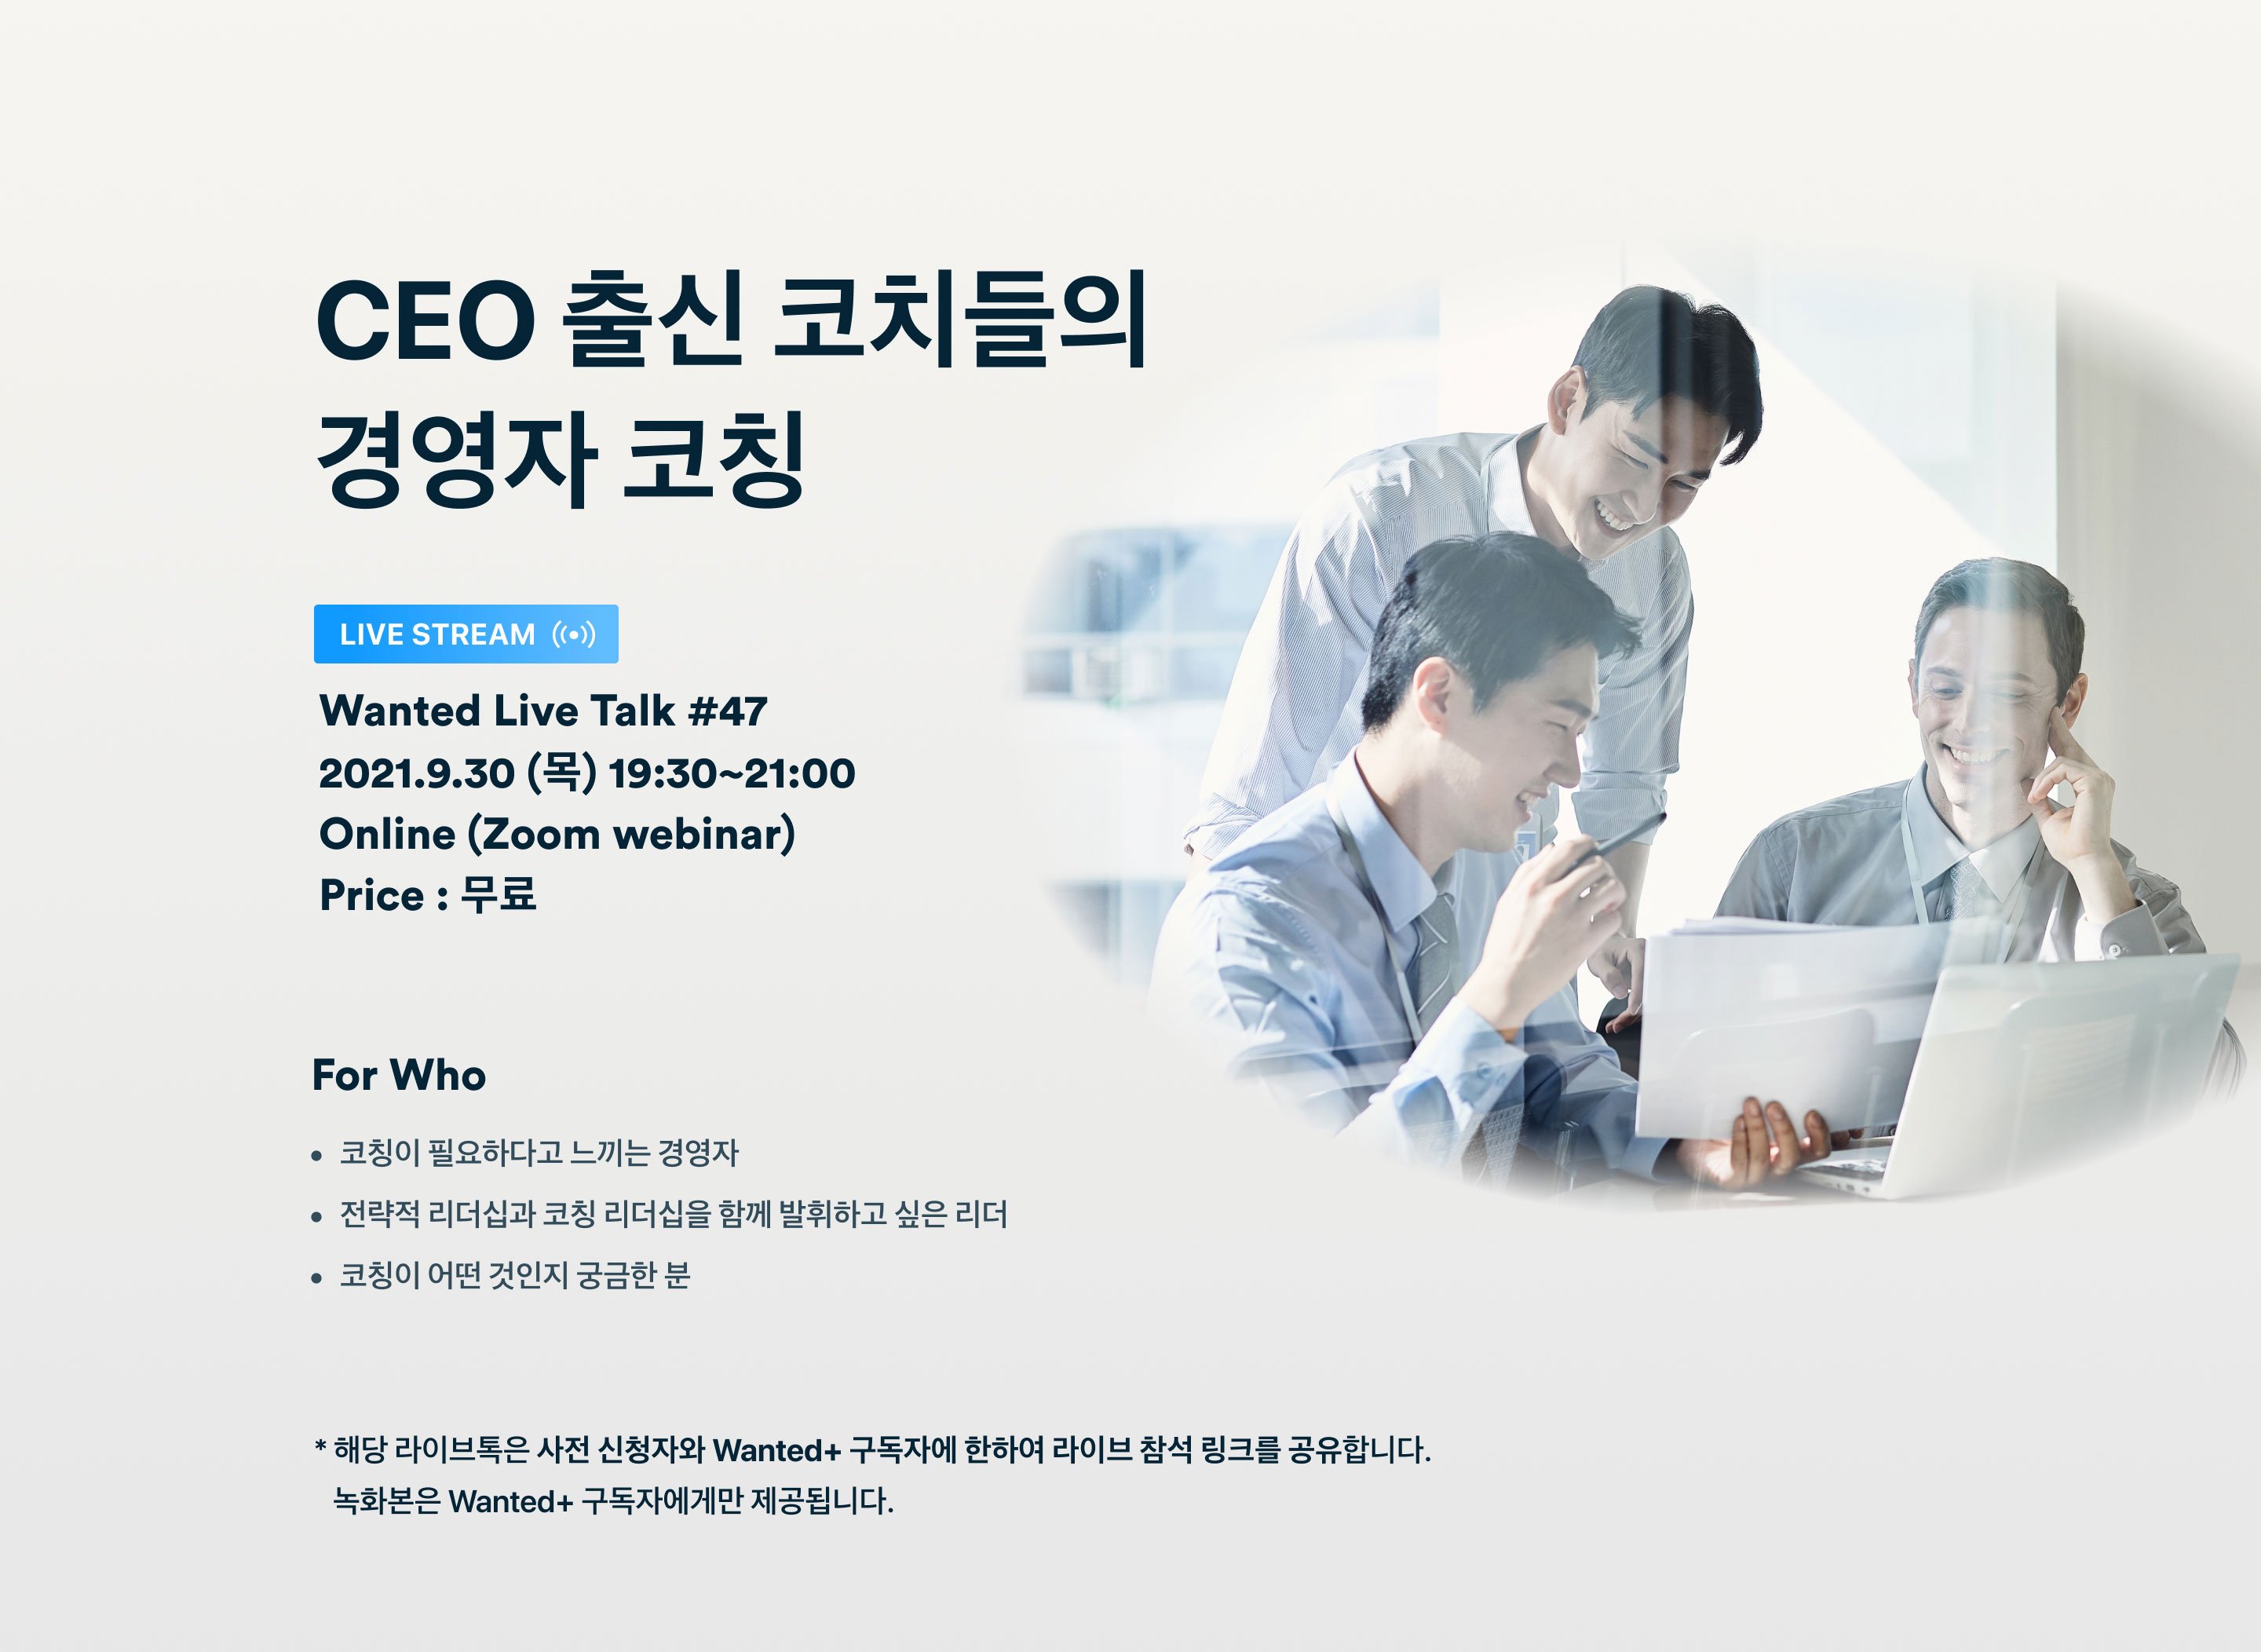 https://static.wanted.co.kr/images/events/1501/811e12c9.jpg